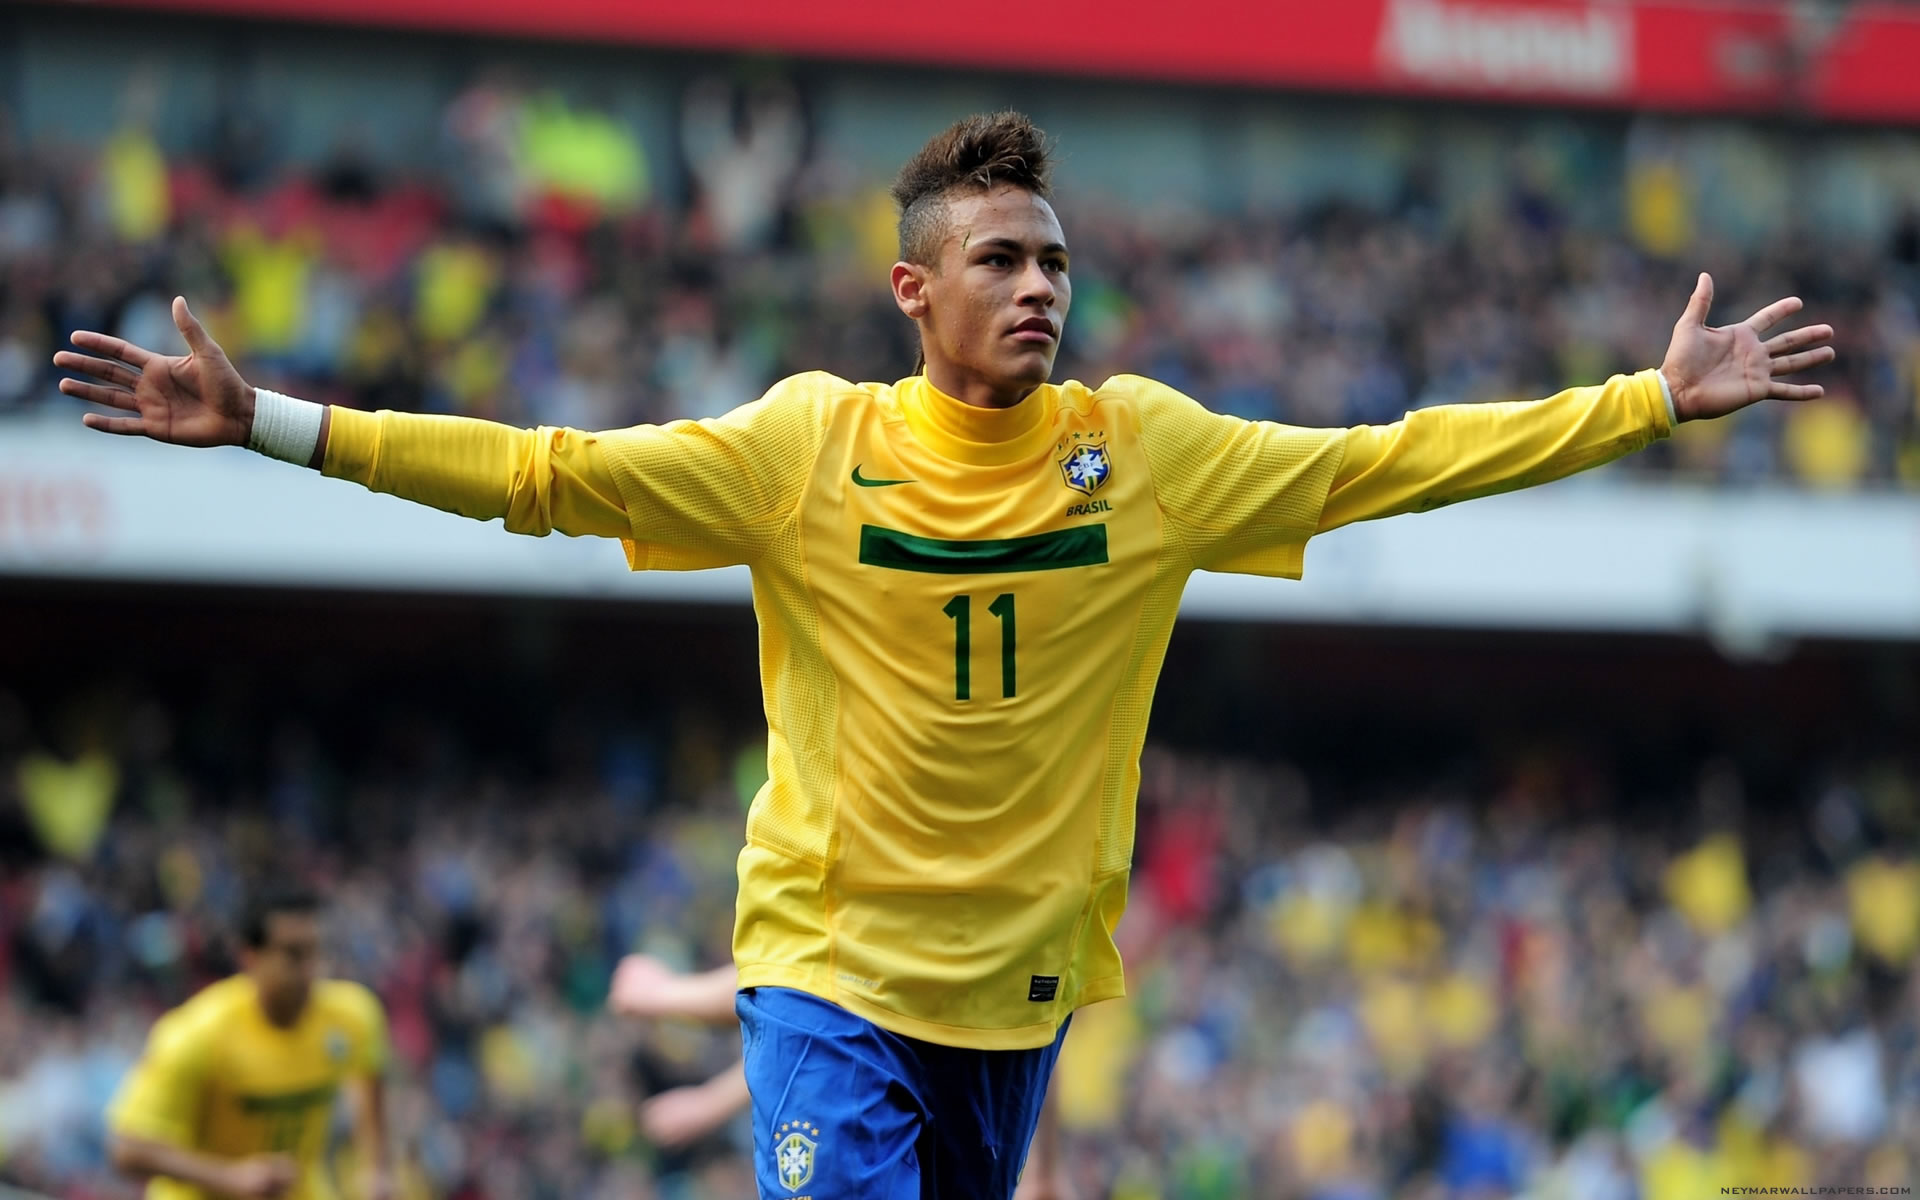 Neymar Brazil celebratory run wallpaper